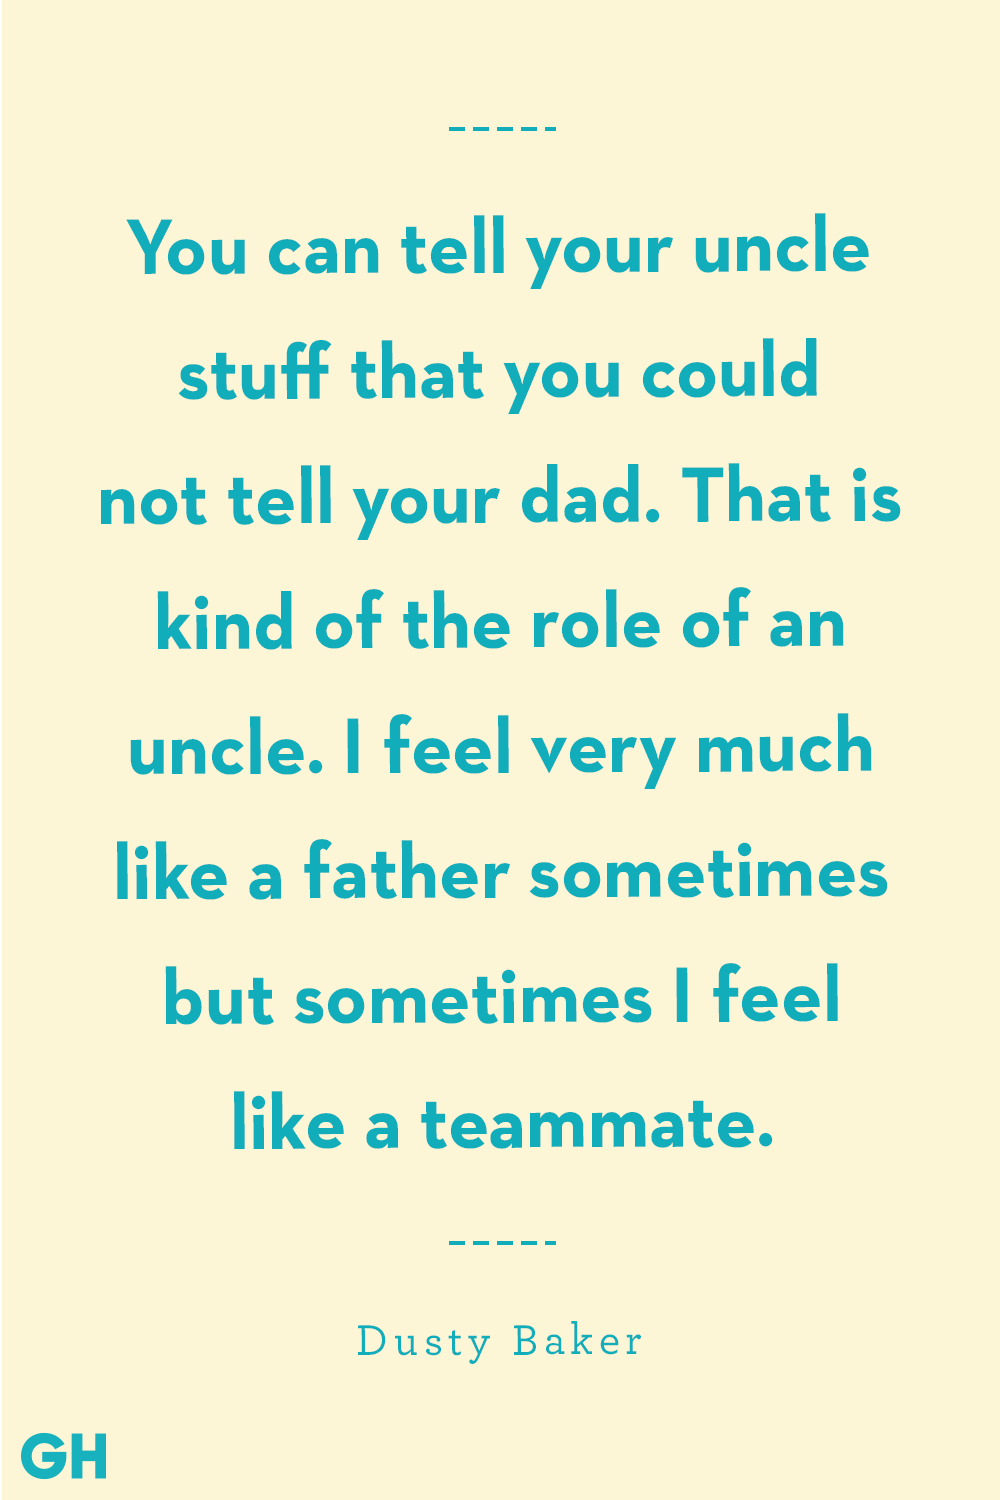 Uncle Quotes Dusty Baker